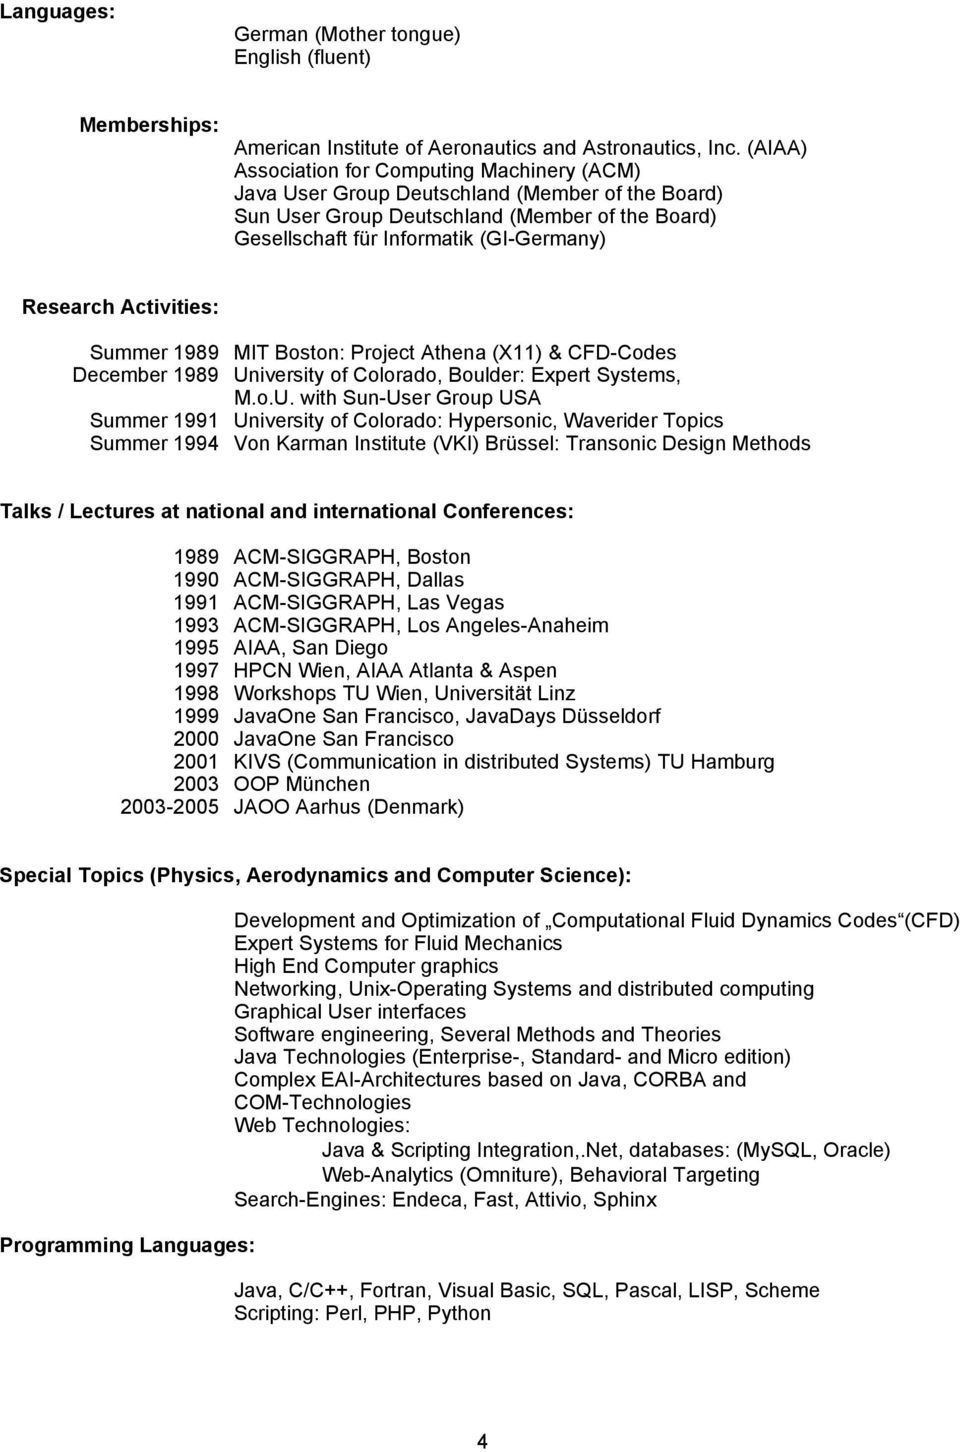 Activities: Summer 1989 MIT Boston: Project Athena (X11) & CFD-Codes December 1989 Un